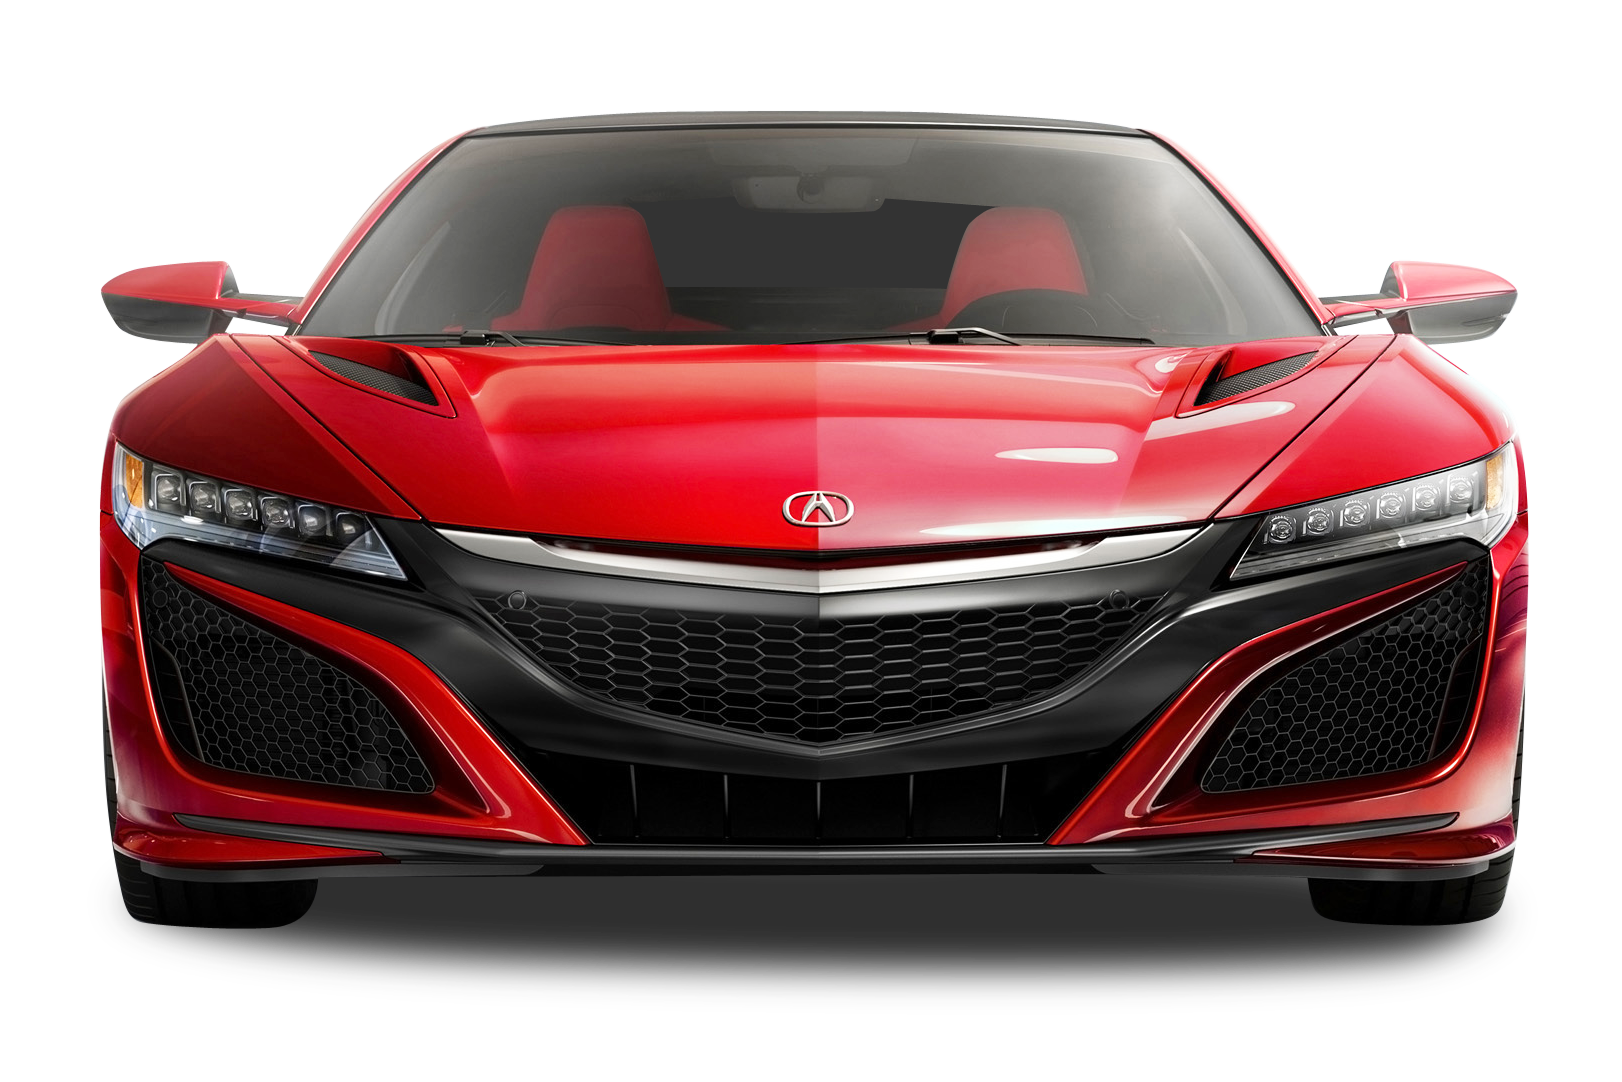 Red Acura NSX Car PNG Image.